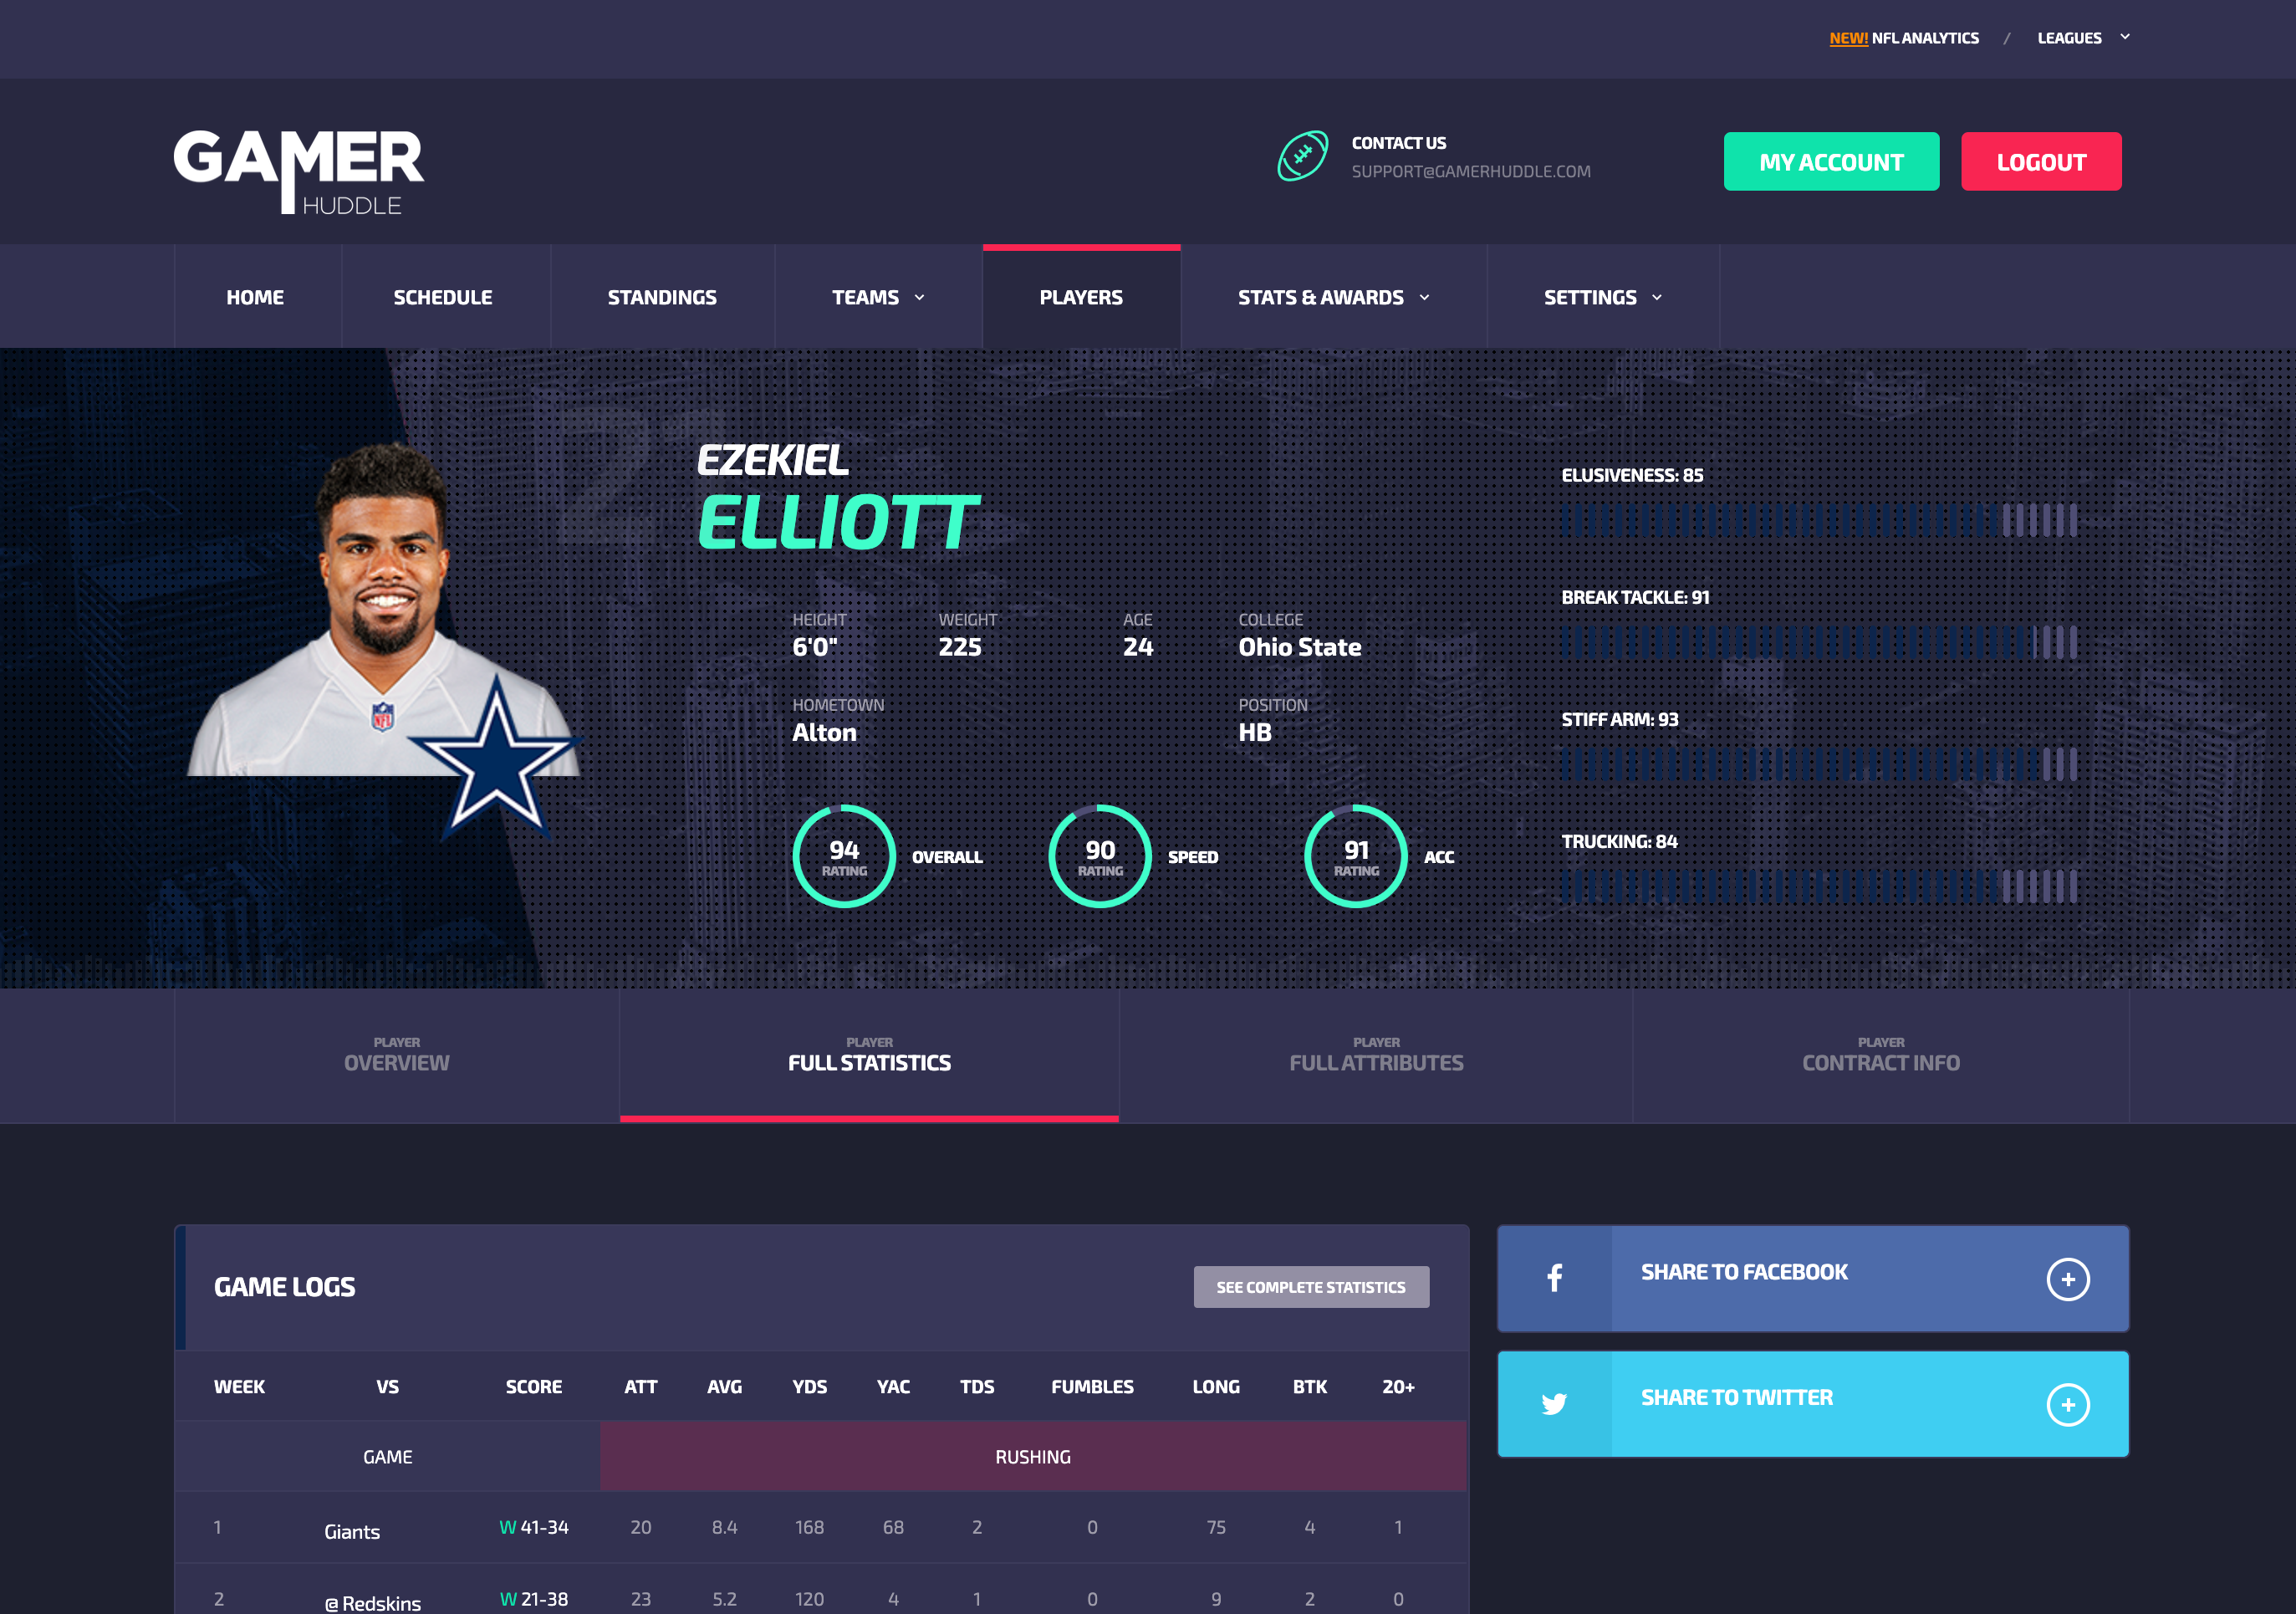 Image of a single player and his overview page in the GamerHuddle web platform.